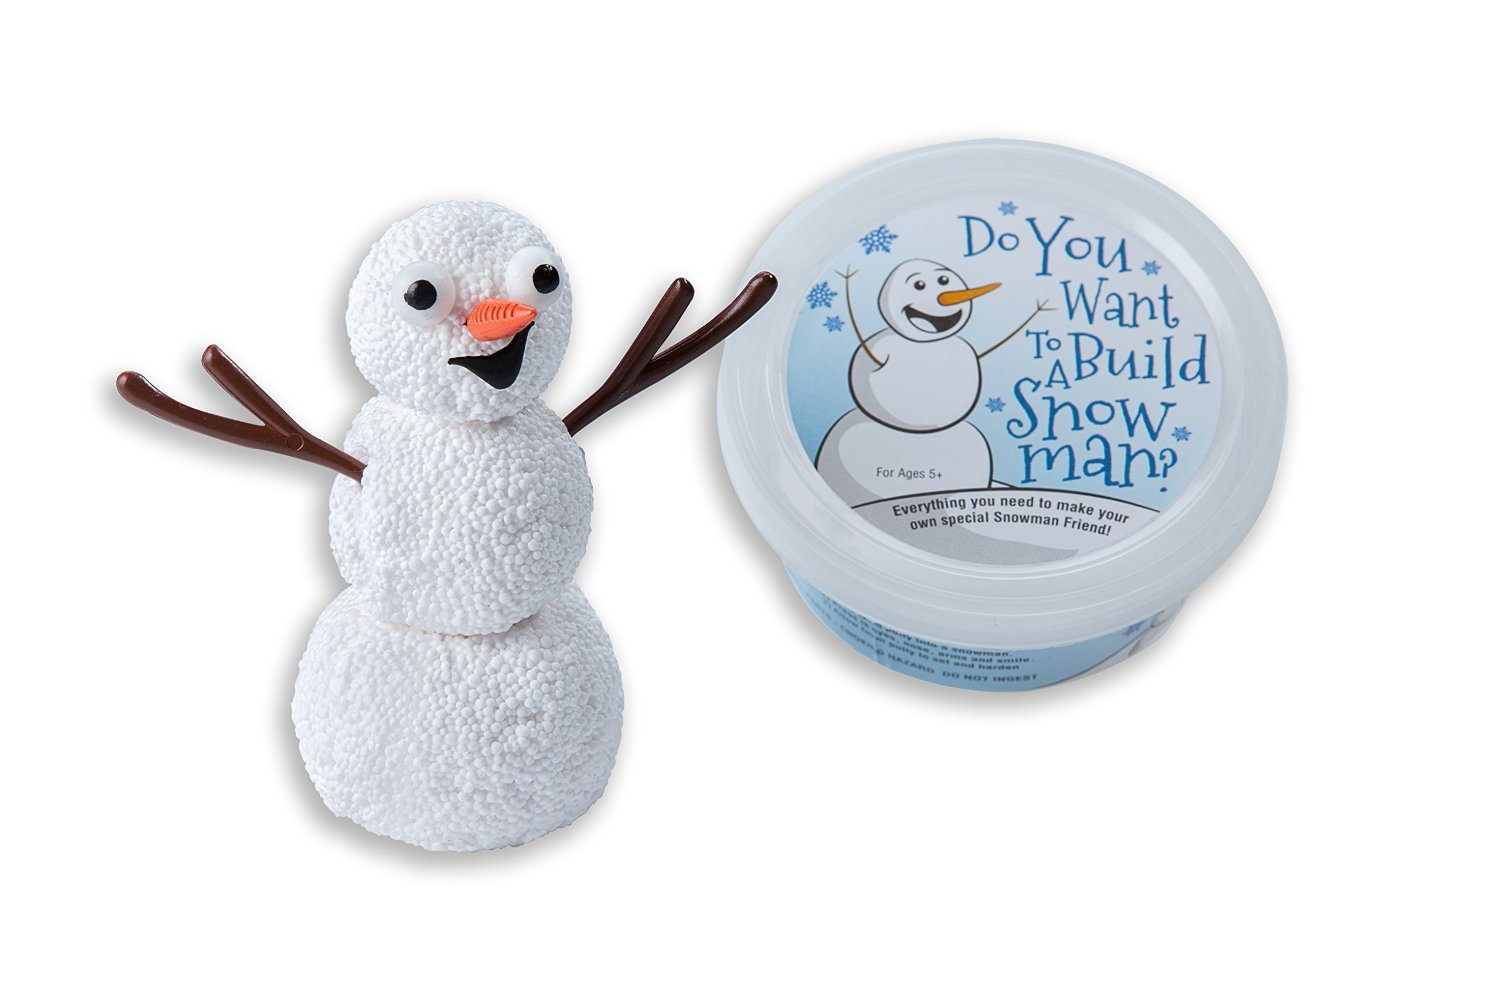 Mold Foam Putty Into A Snowman; Perfect For Birthday Party Favors or Stocking Stuffers For Kids